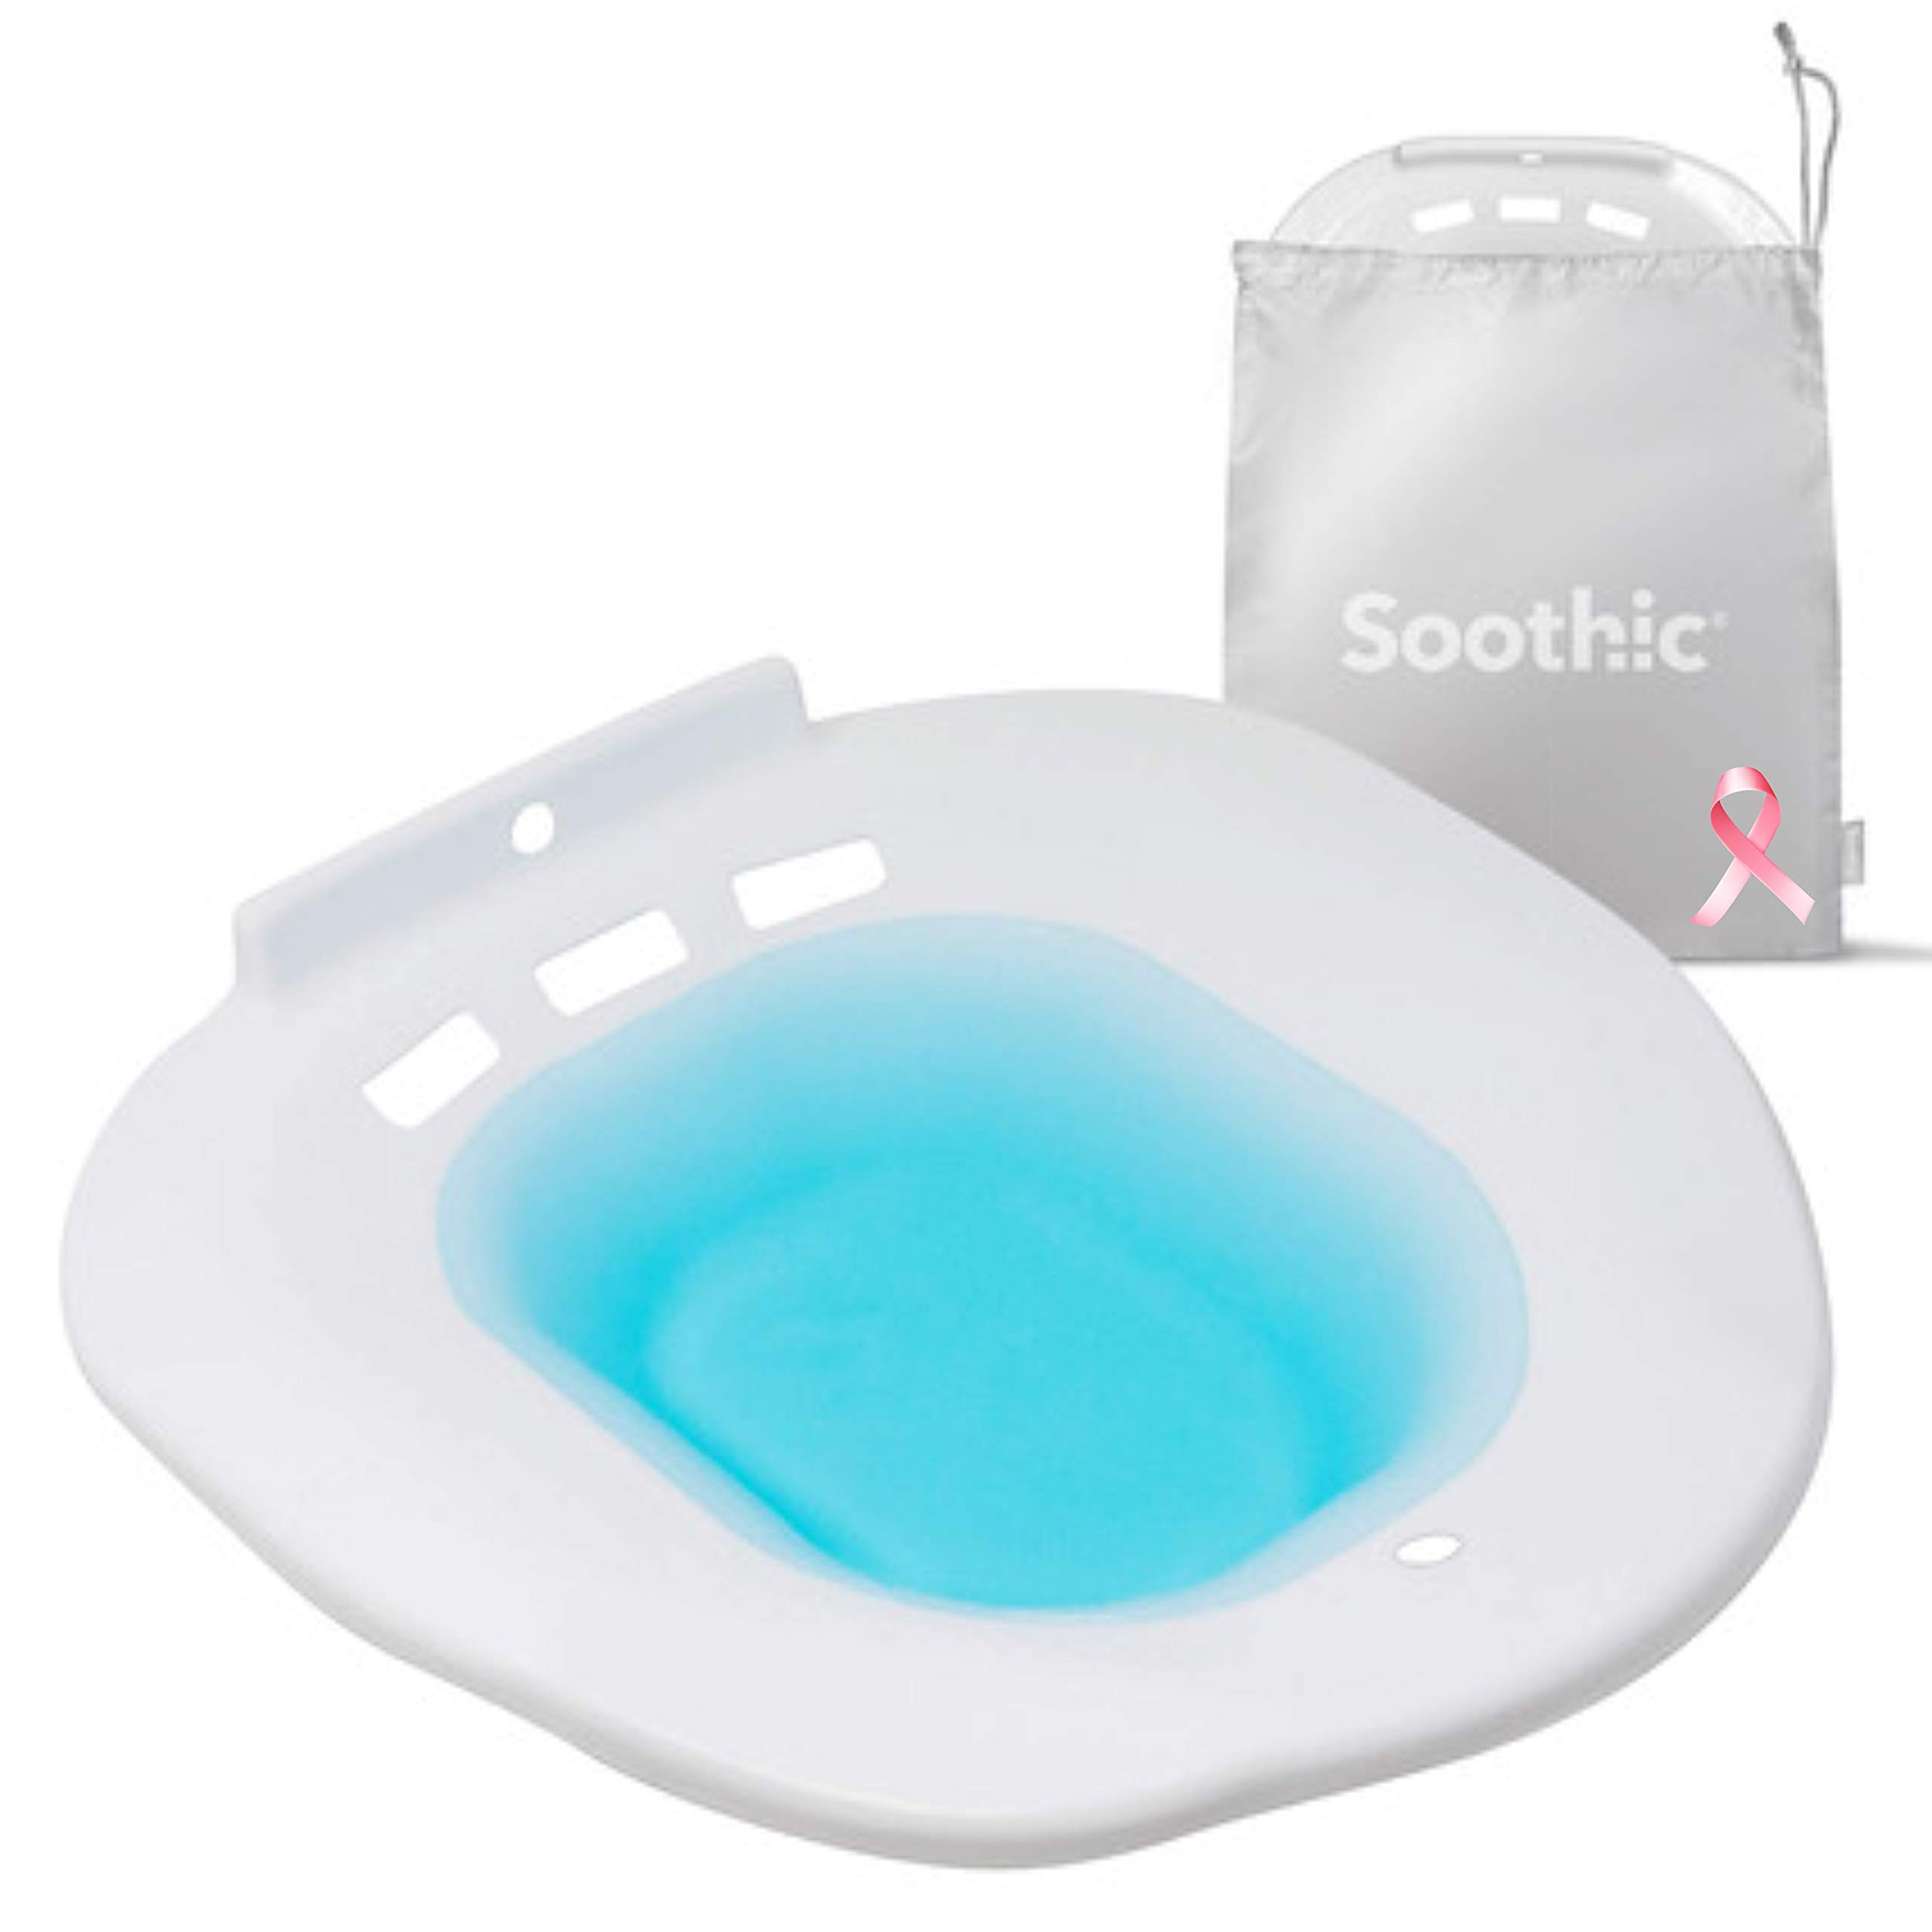 Soothic Sitz Bath for Toilet Seat, Ideal for Postpartum Care or Hemorrhoid Treatment, Yoni Steam Seat for Women, Limit Infection Risk, Reduce Inflammation, and Soothe Your Perineum